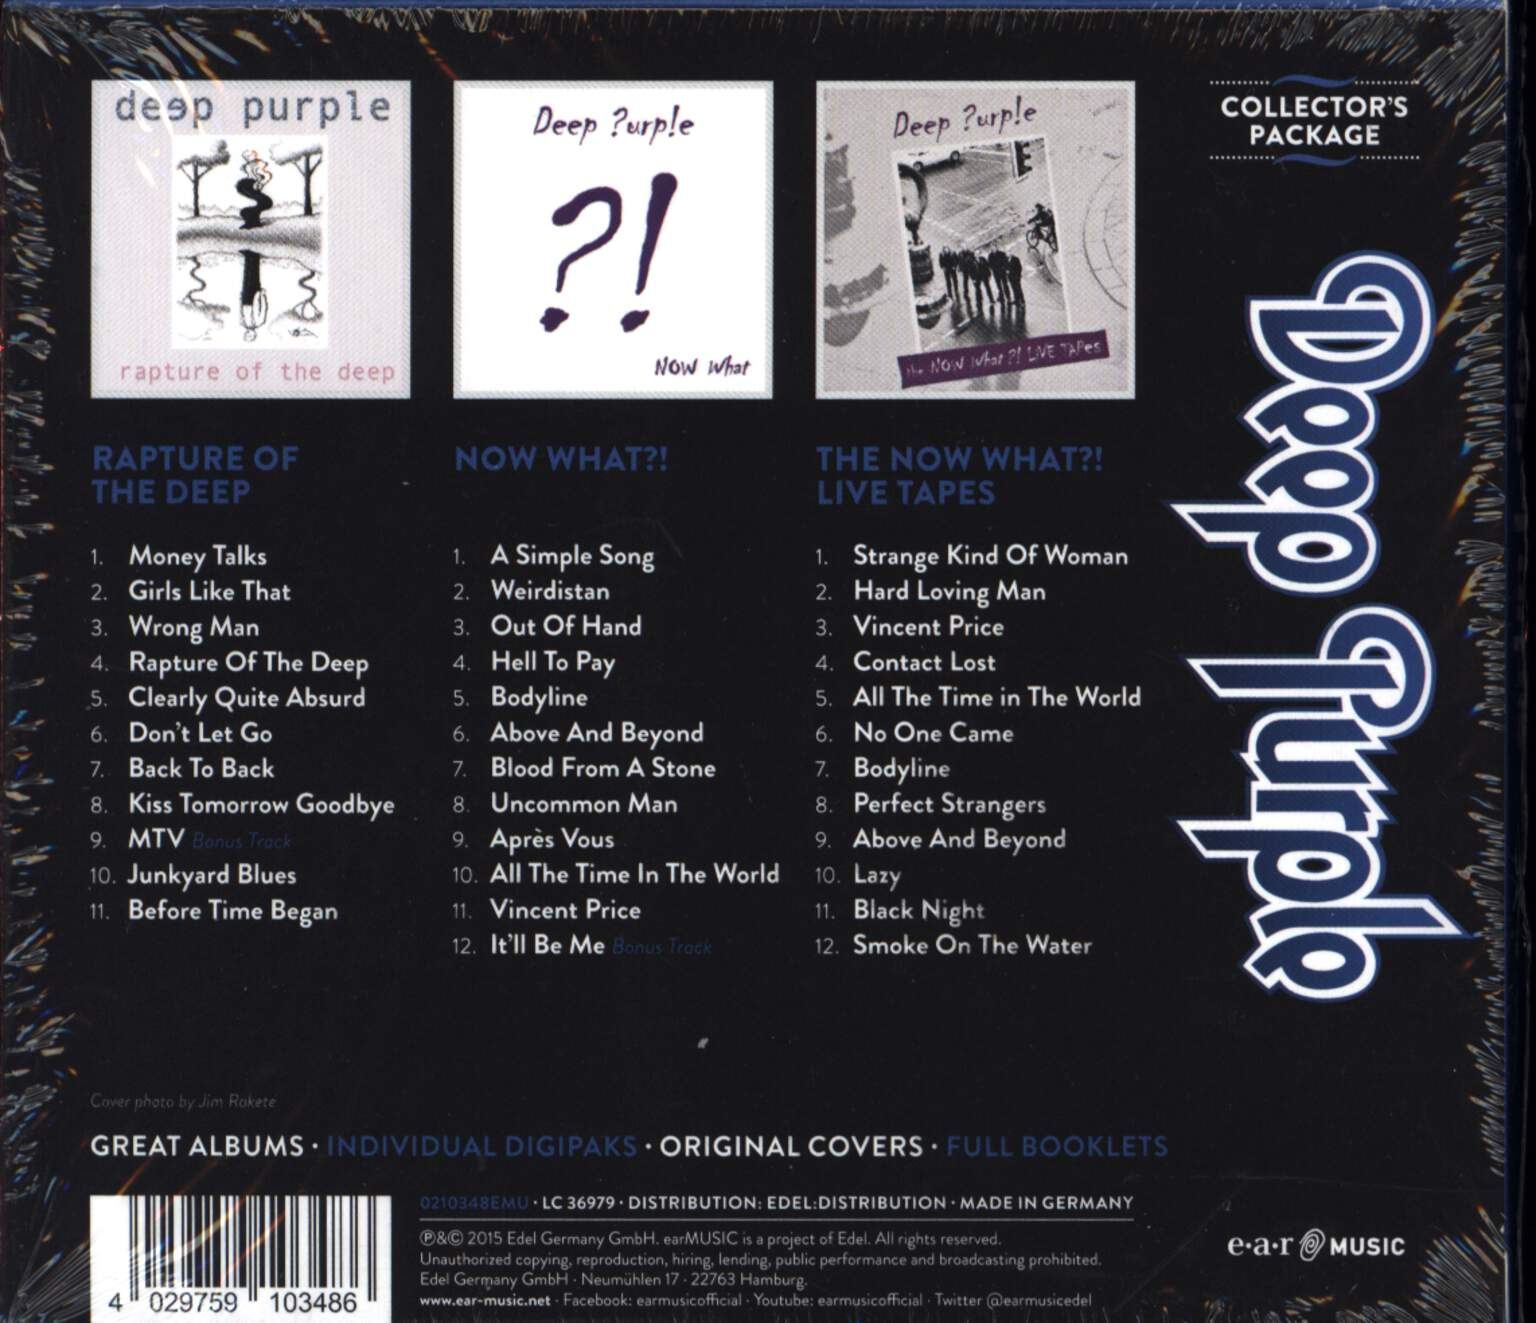 Deep Purple: Collectors package, CD